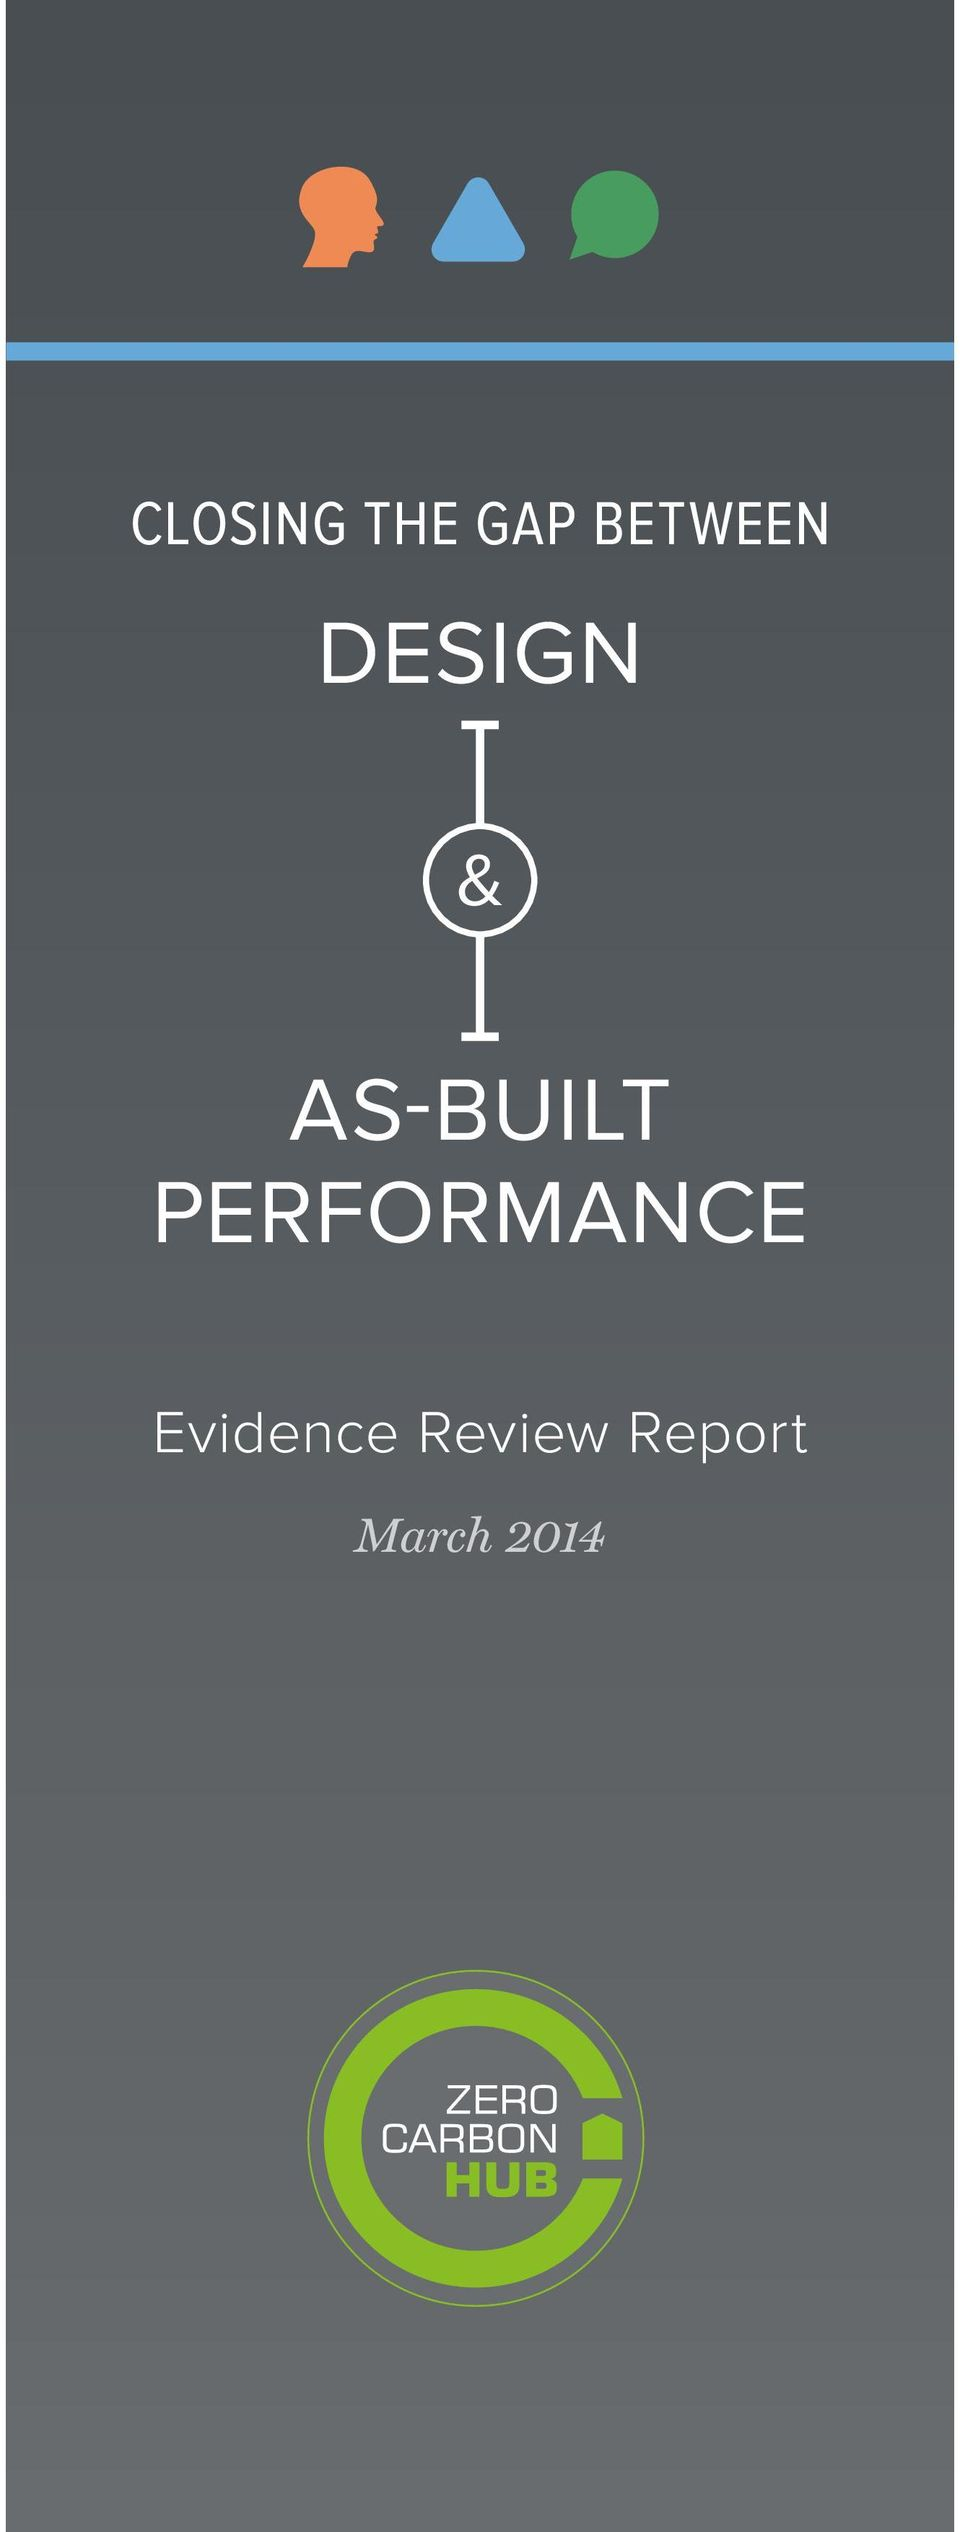 AS-BUILT PERFORMANCE